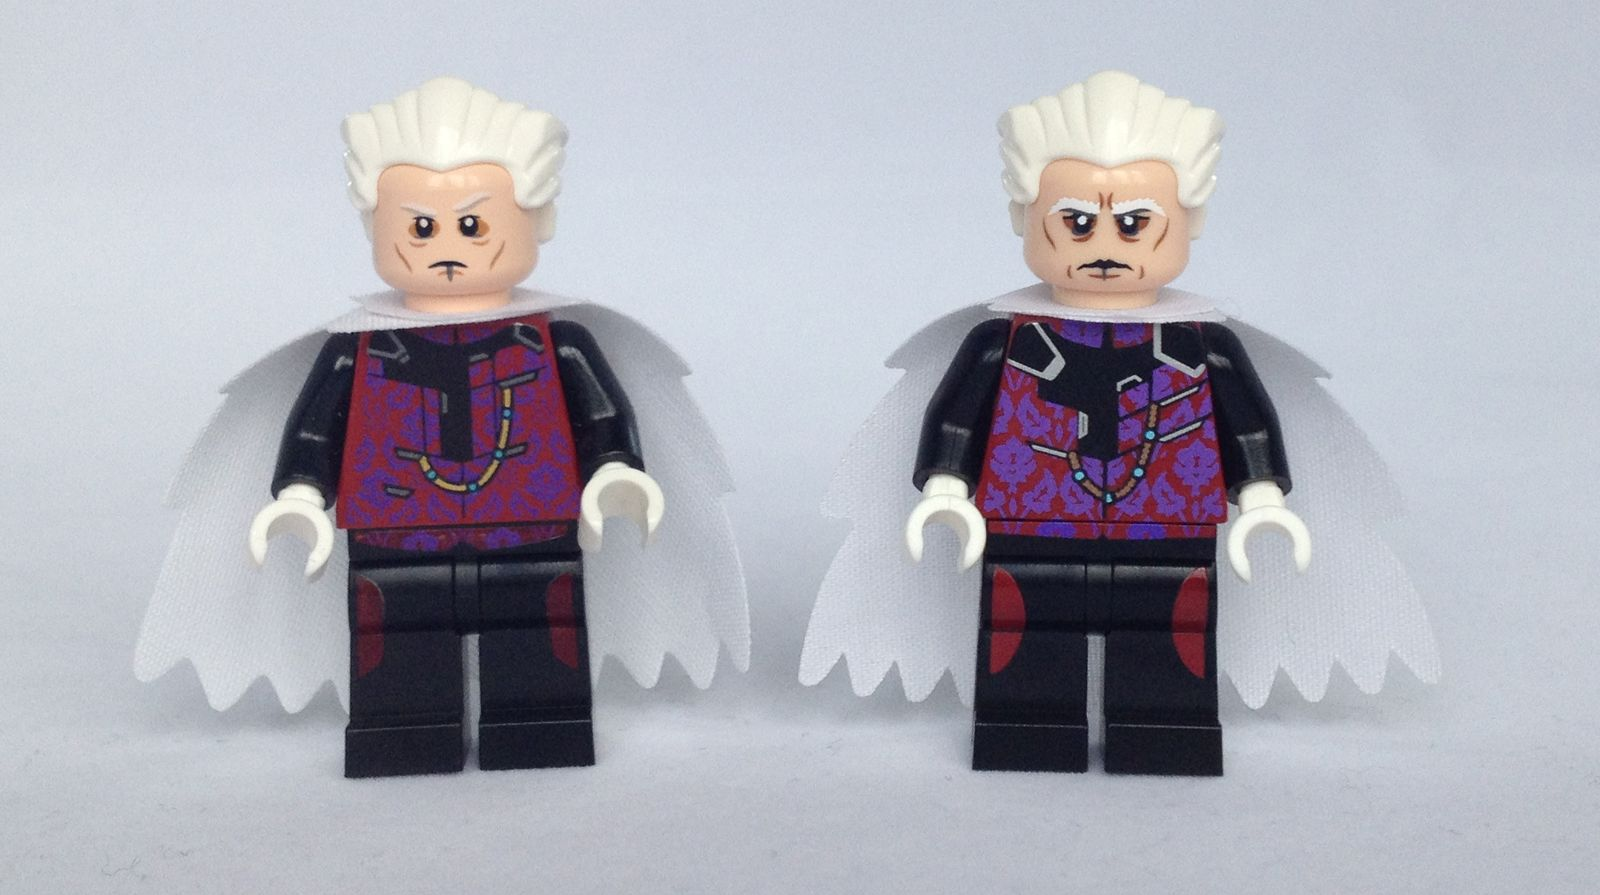 LEGO The Collector Minifigure Comparison